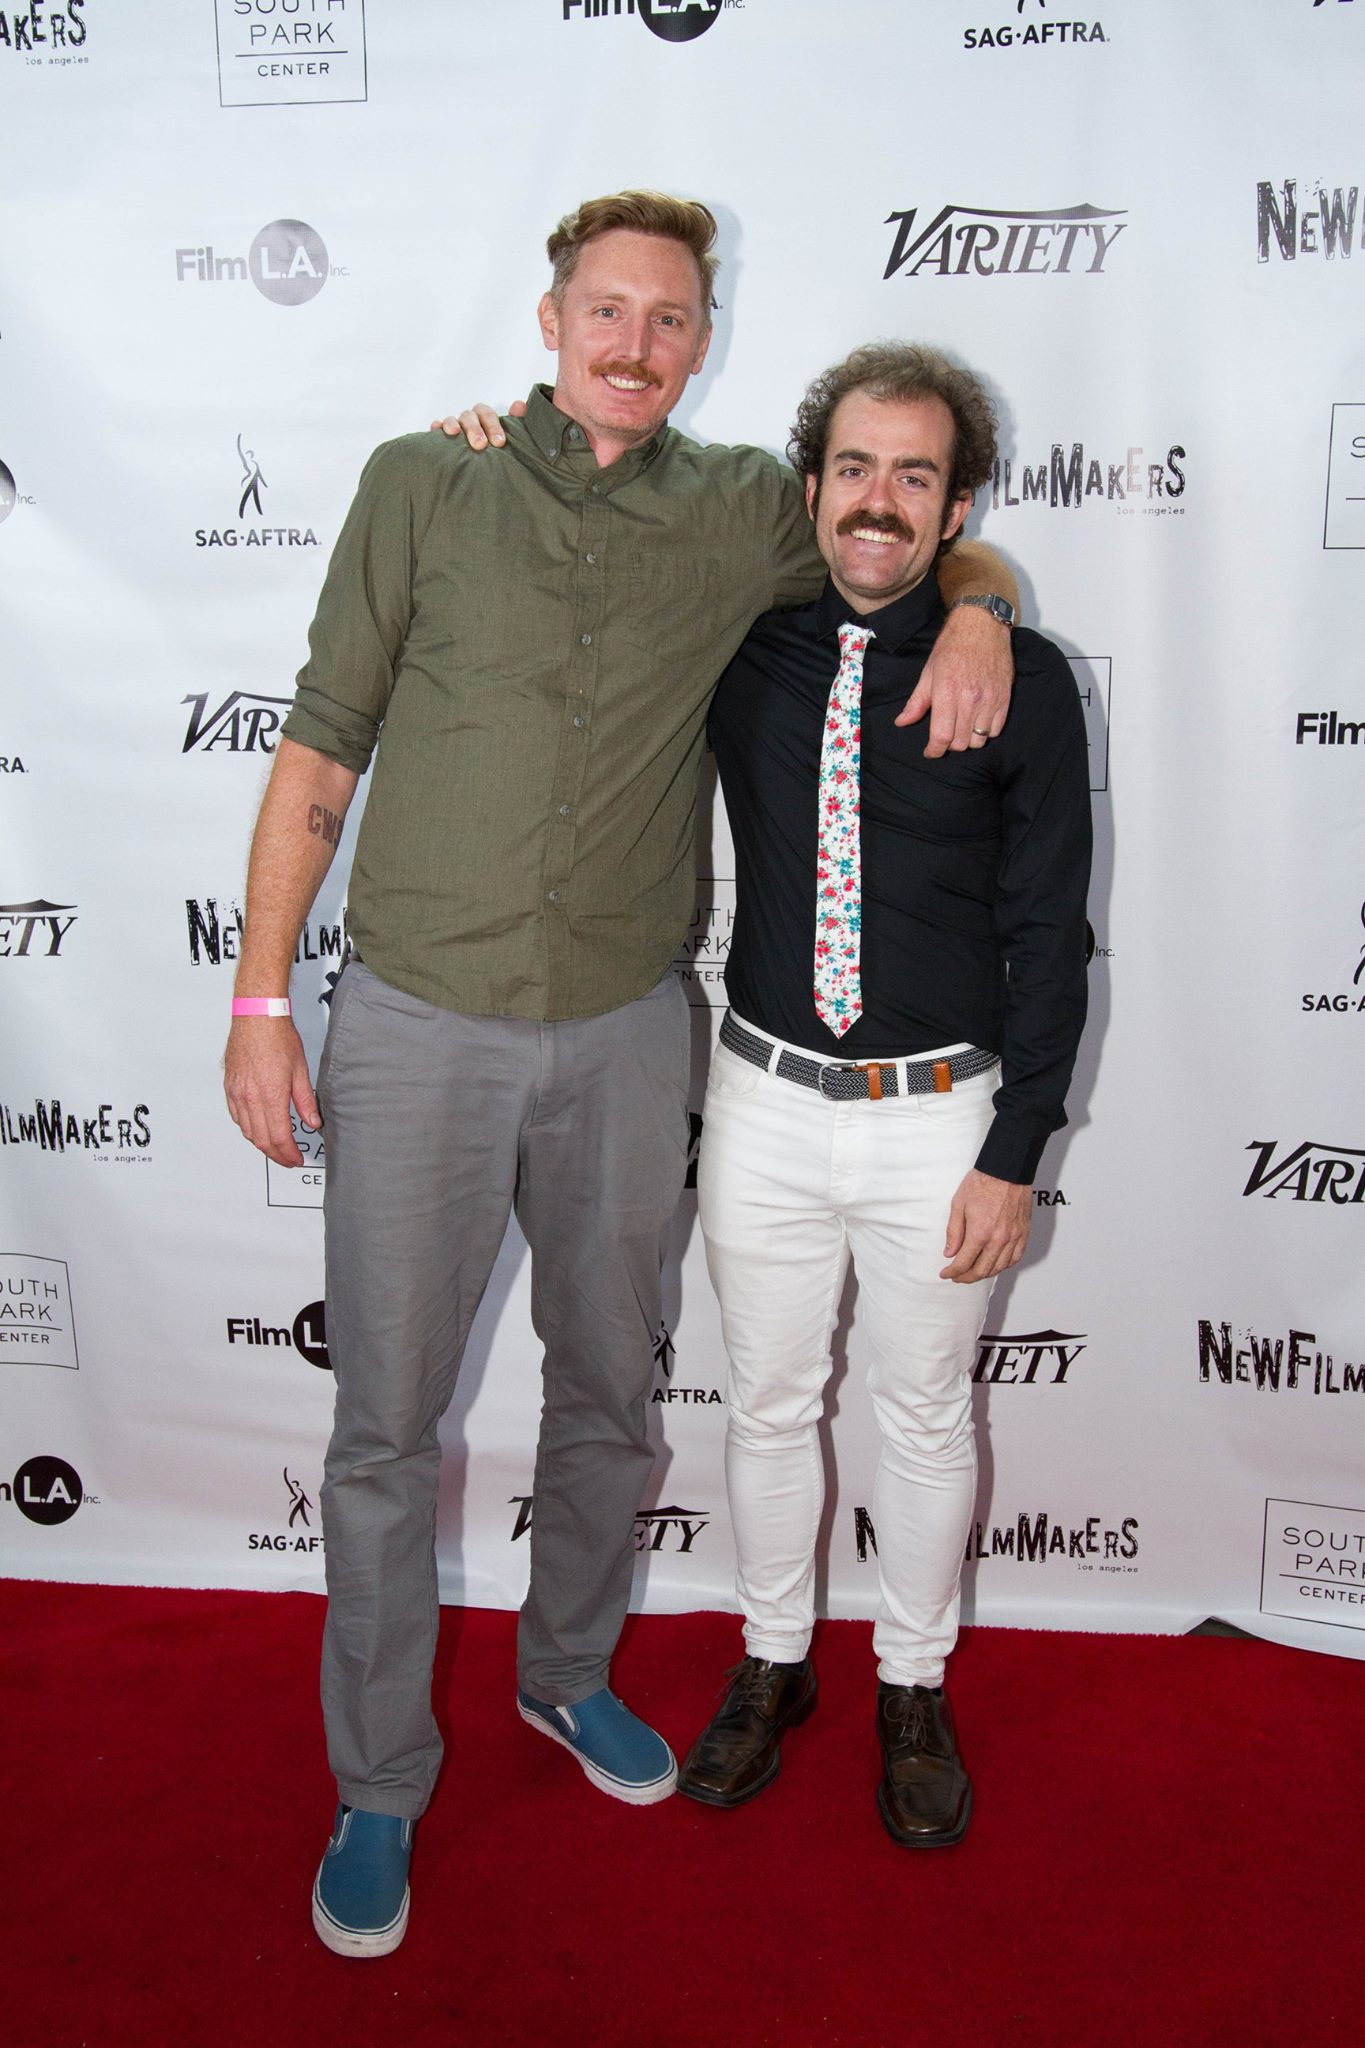 Aaron Gambel & Sean David Christensen take to the red carpet at DocuSlate; December 2nd, 2017 at South Park Center.